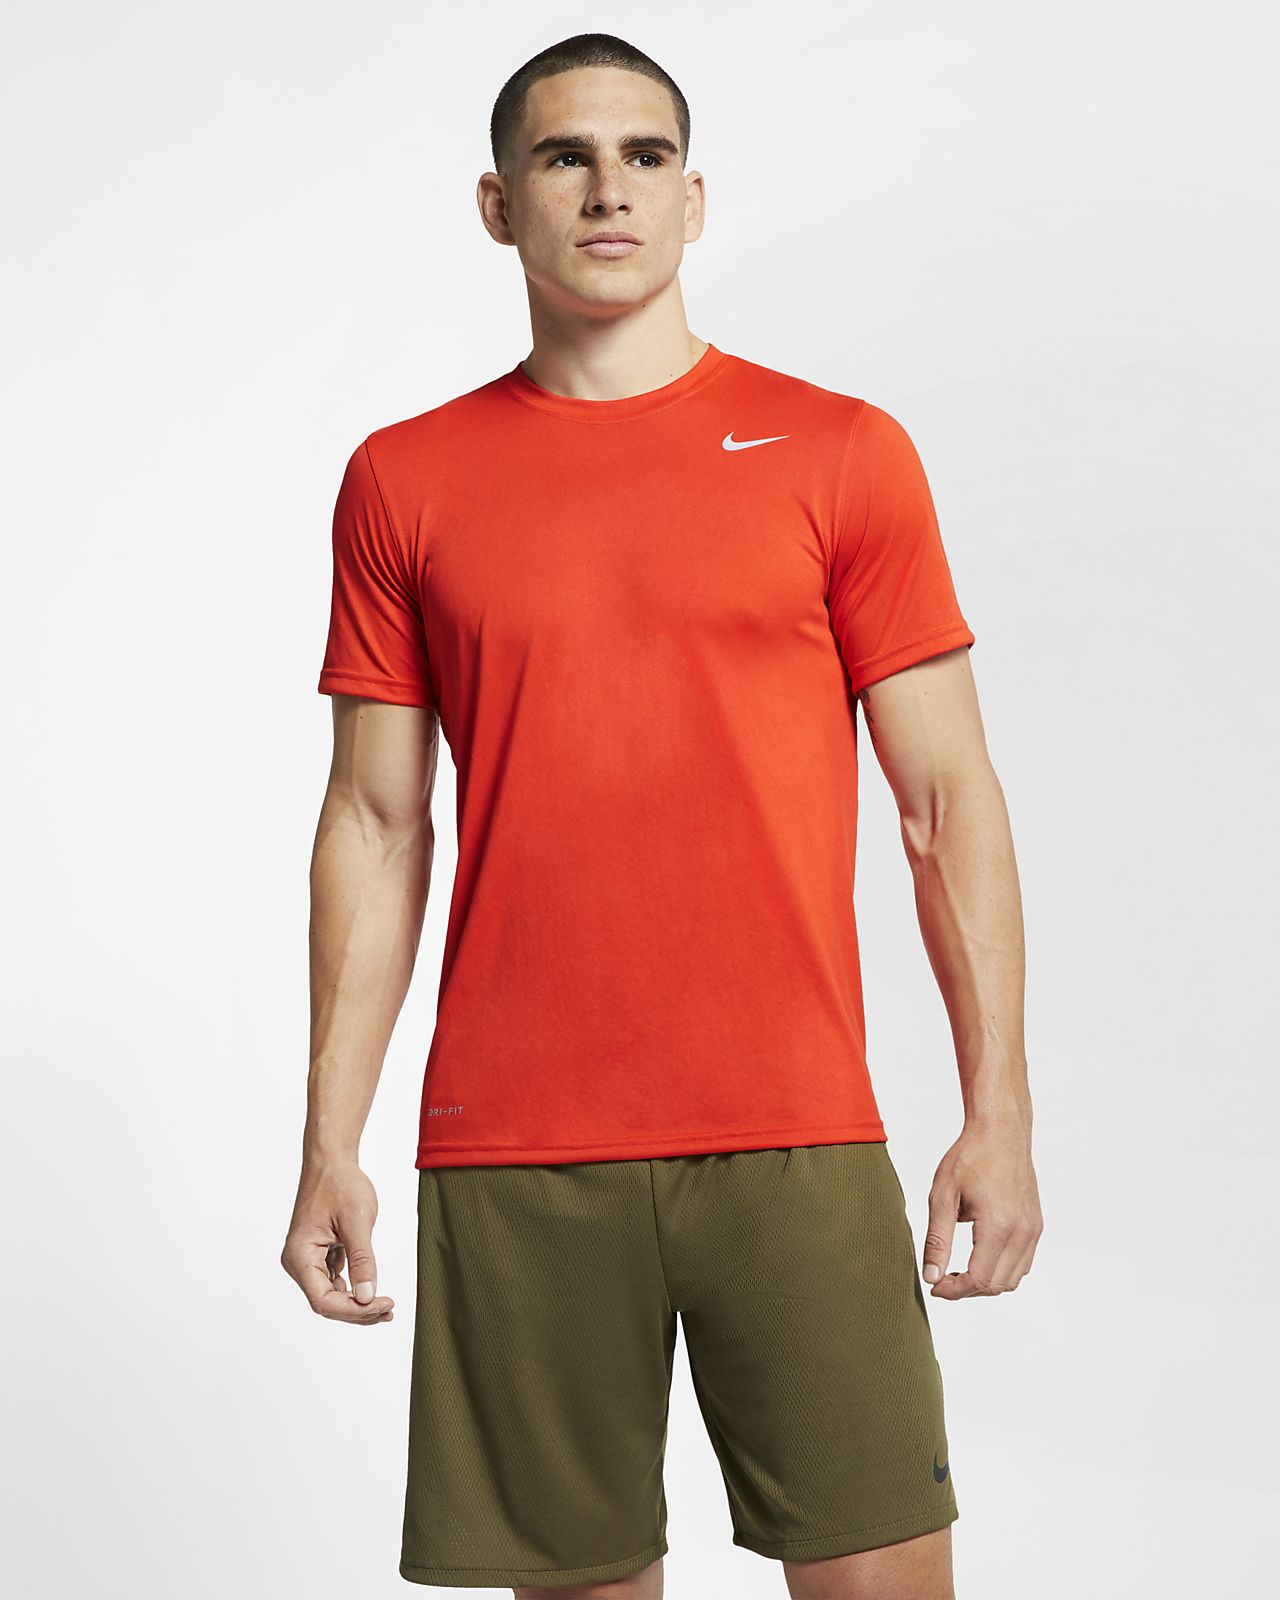 ca157ed2 Nike Legend 2.0 Men's Training T-Shirt. Nike.com